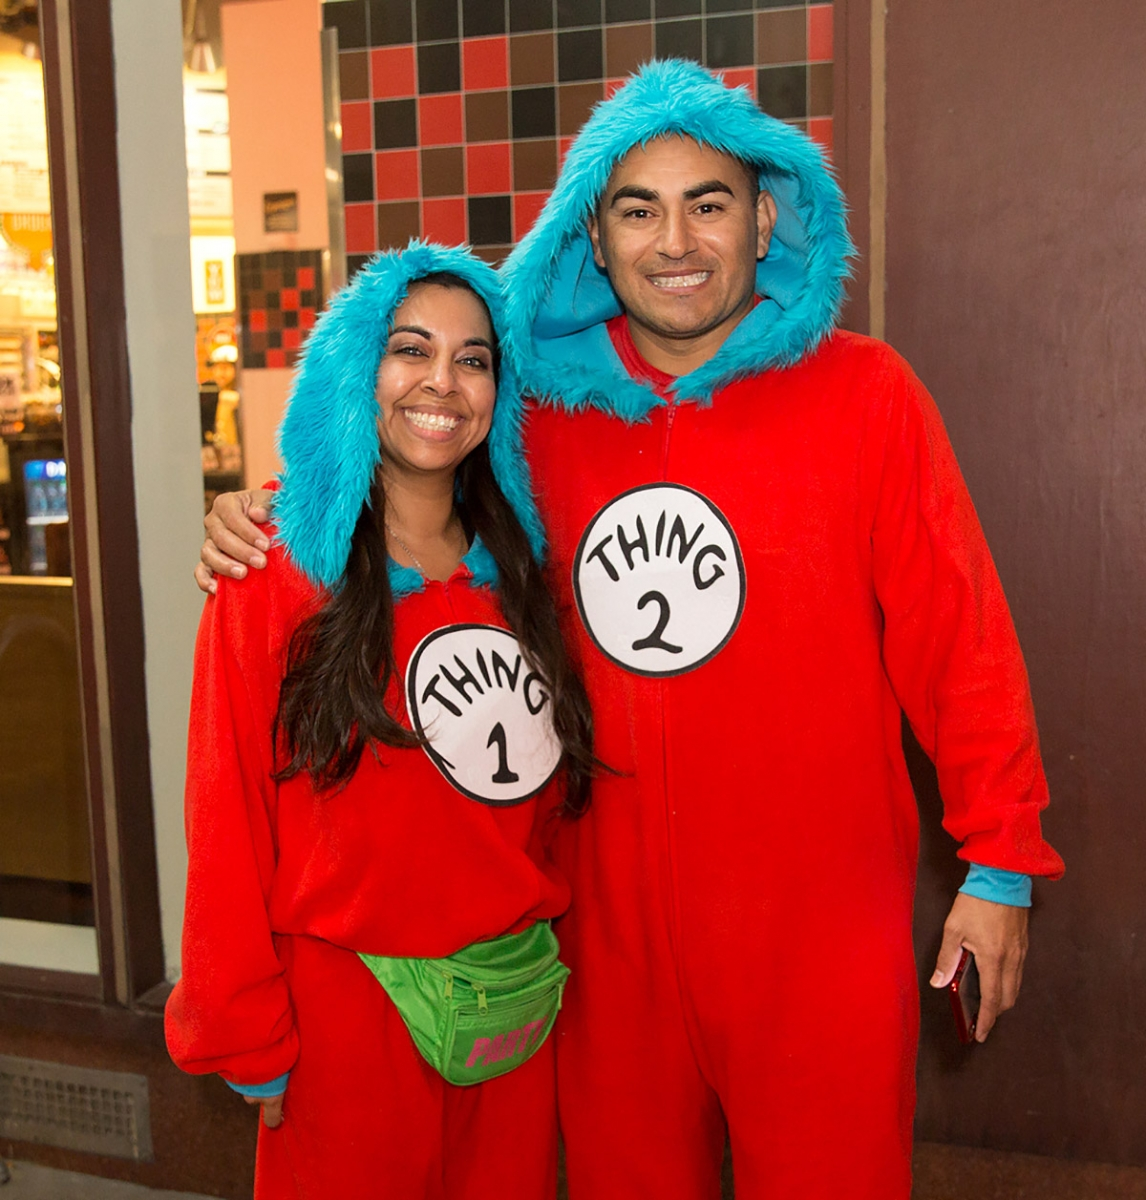 Pub runners have some drinks and bust a few moves during the onesie-themed Pub Run at Moses Rose's Hideout, Jan. 4, 2019.<em><b>Photo by B. Kay Richter   Heron contributor</b></em>